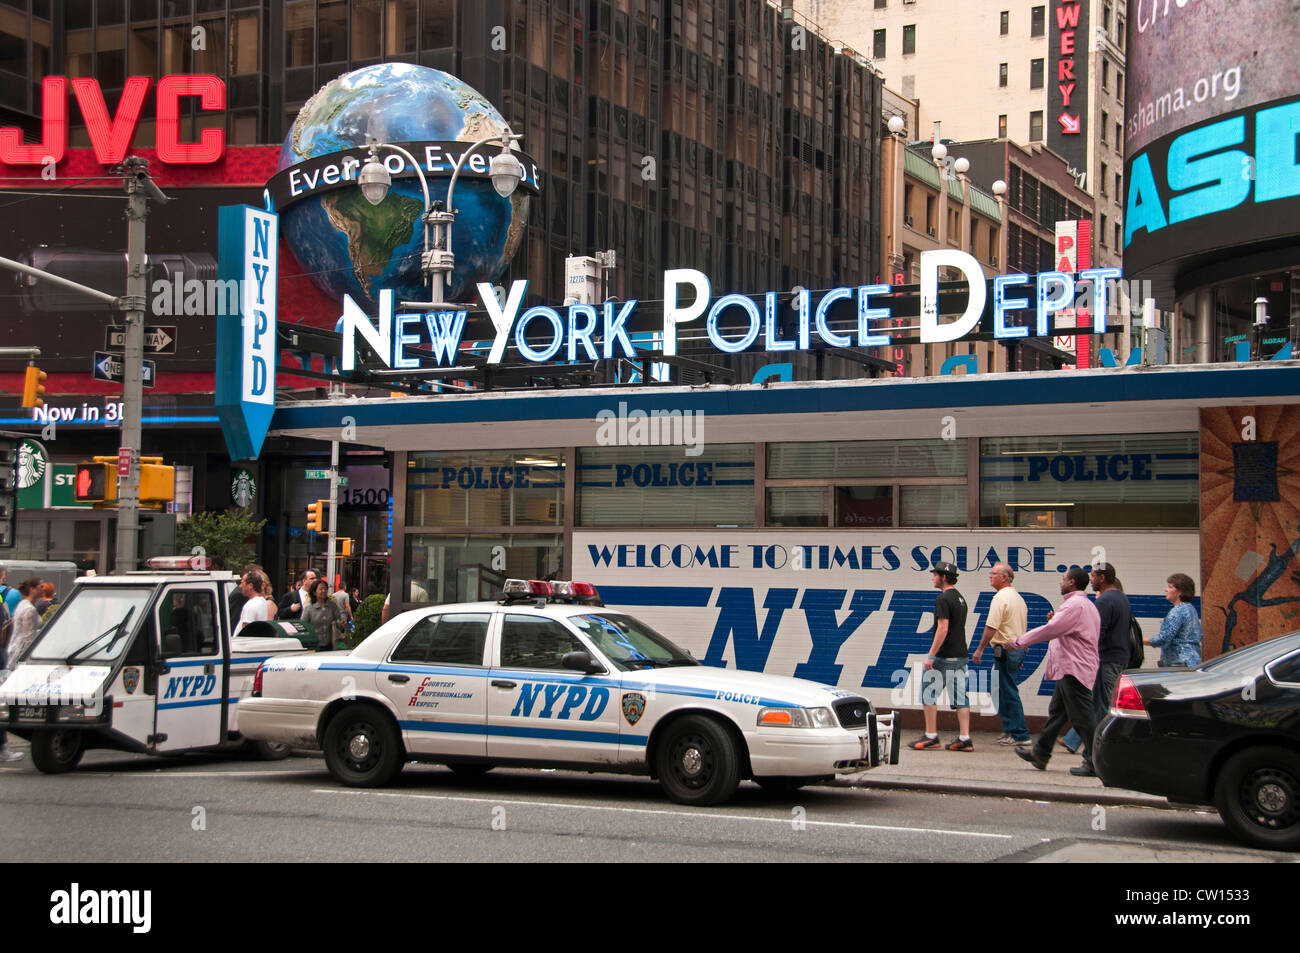 Car Dashboard Wallpaper New York Police Department Times Square New York City